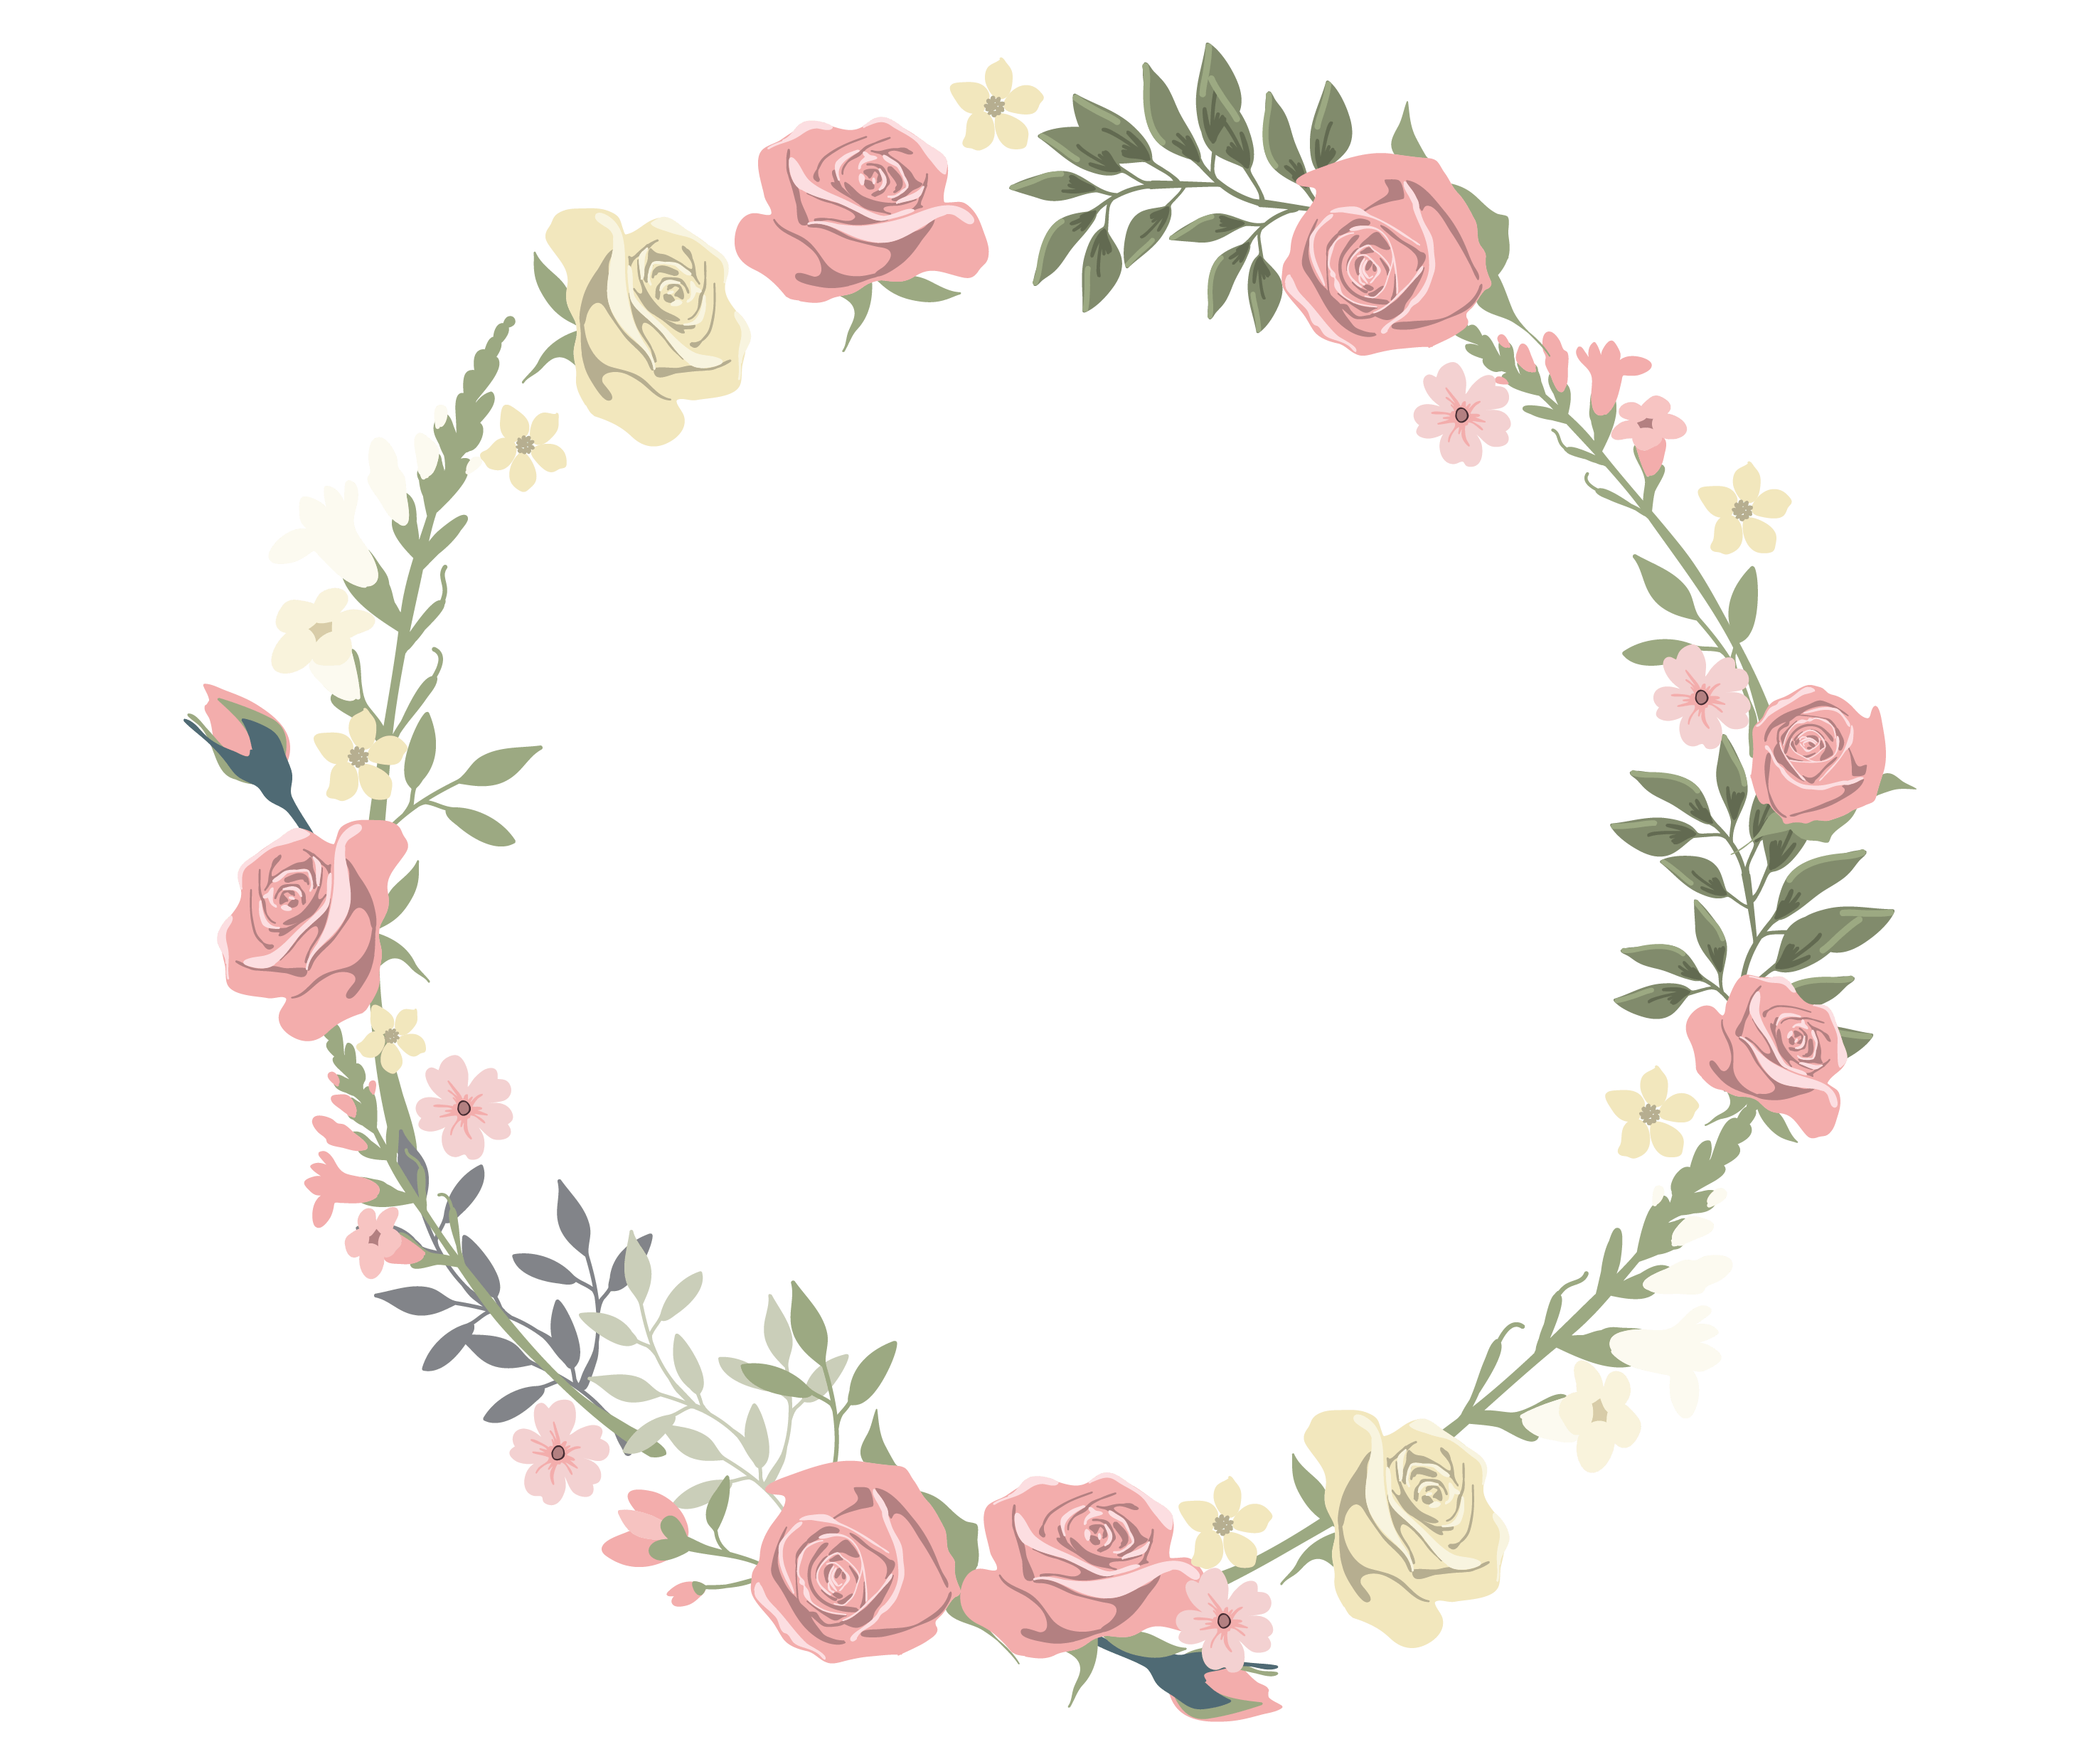 Rustic Picture Frames Png Rustic Flower Vector At Getdrawings Free For Personal Use